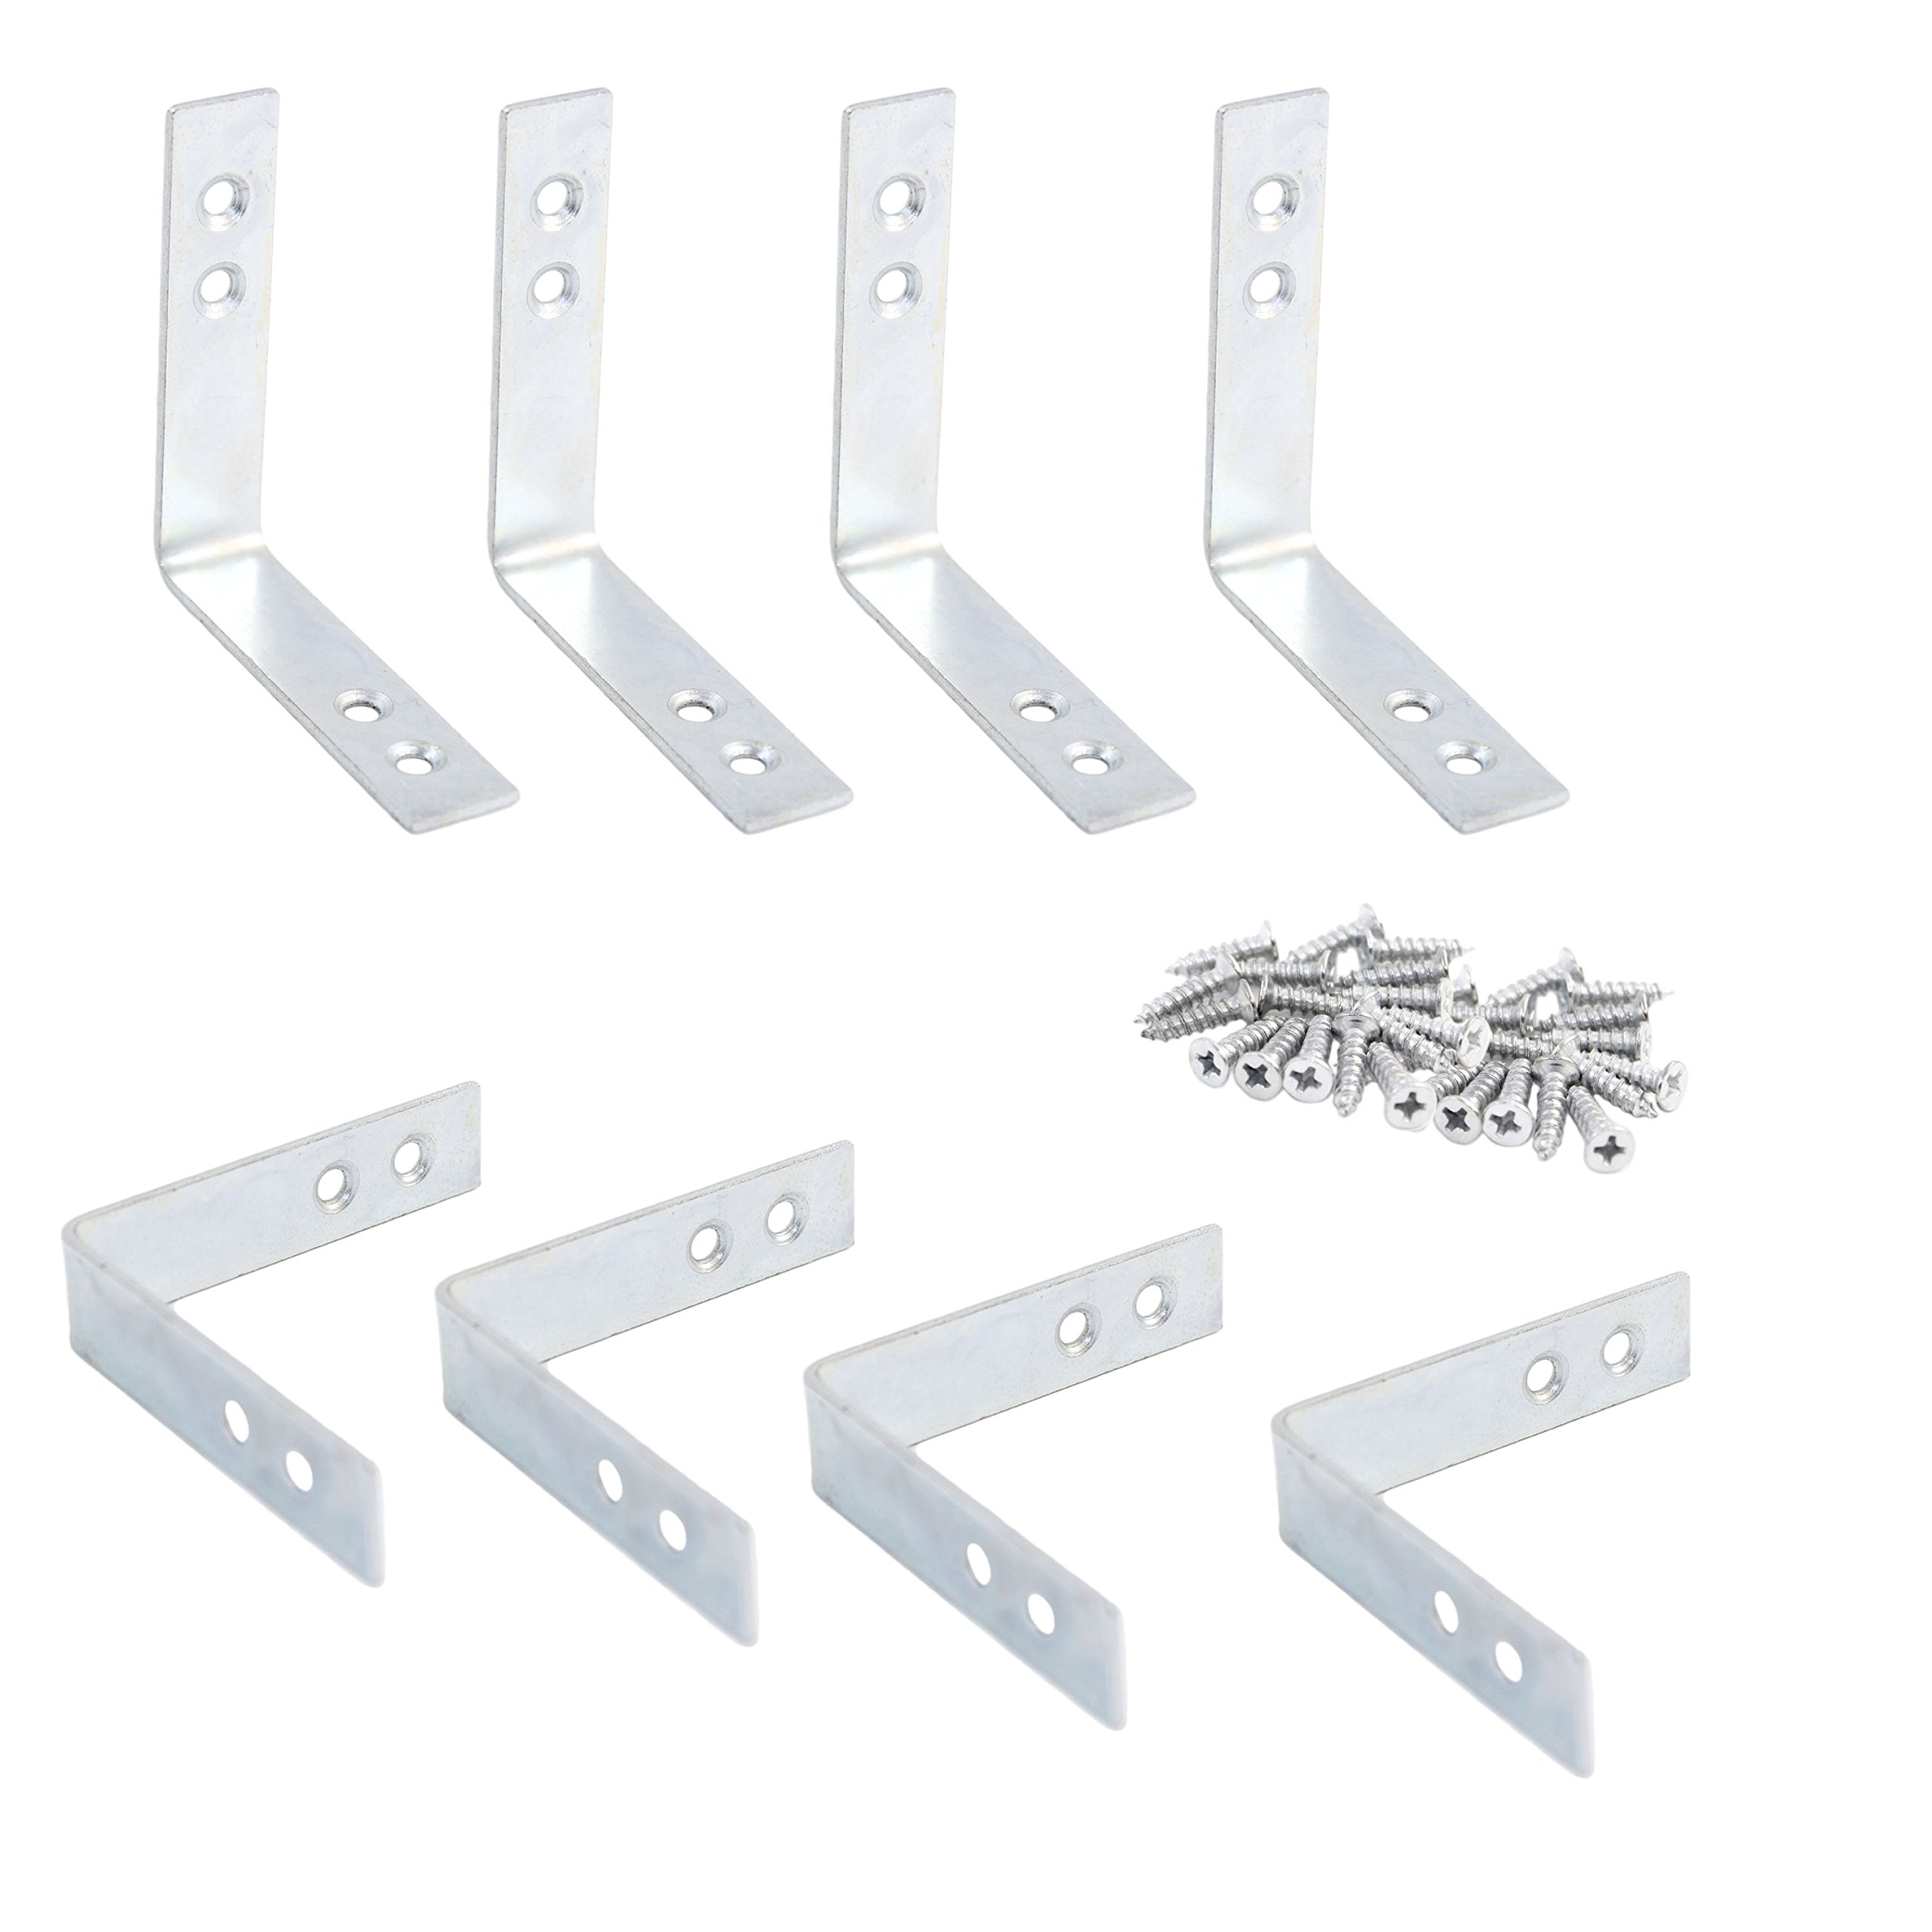 Pack of 8 Corner Brackets with Screws Included